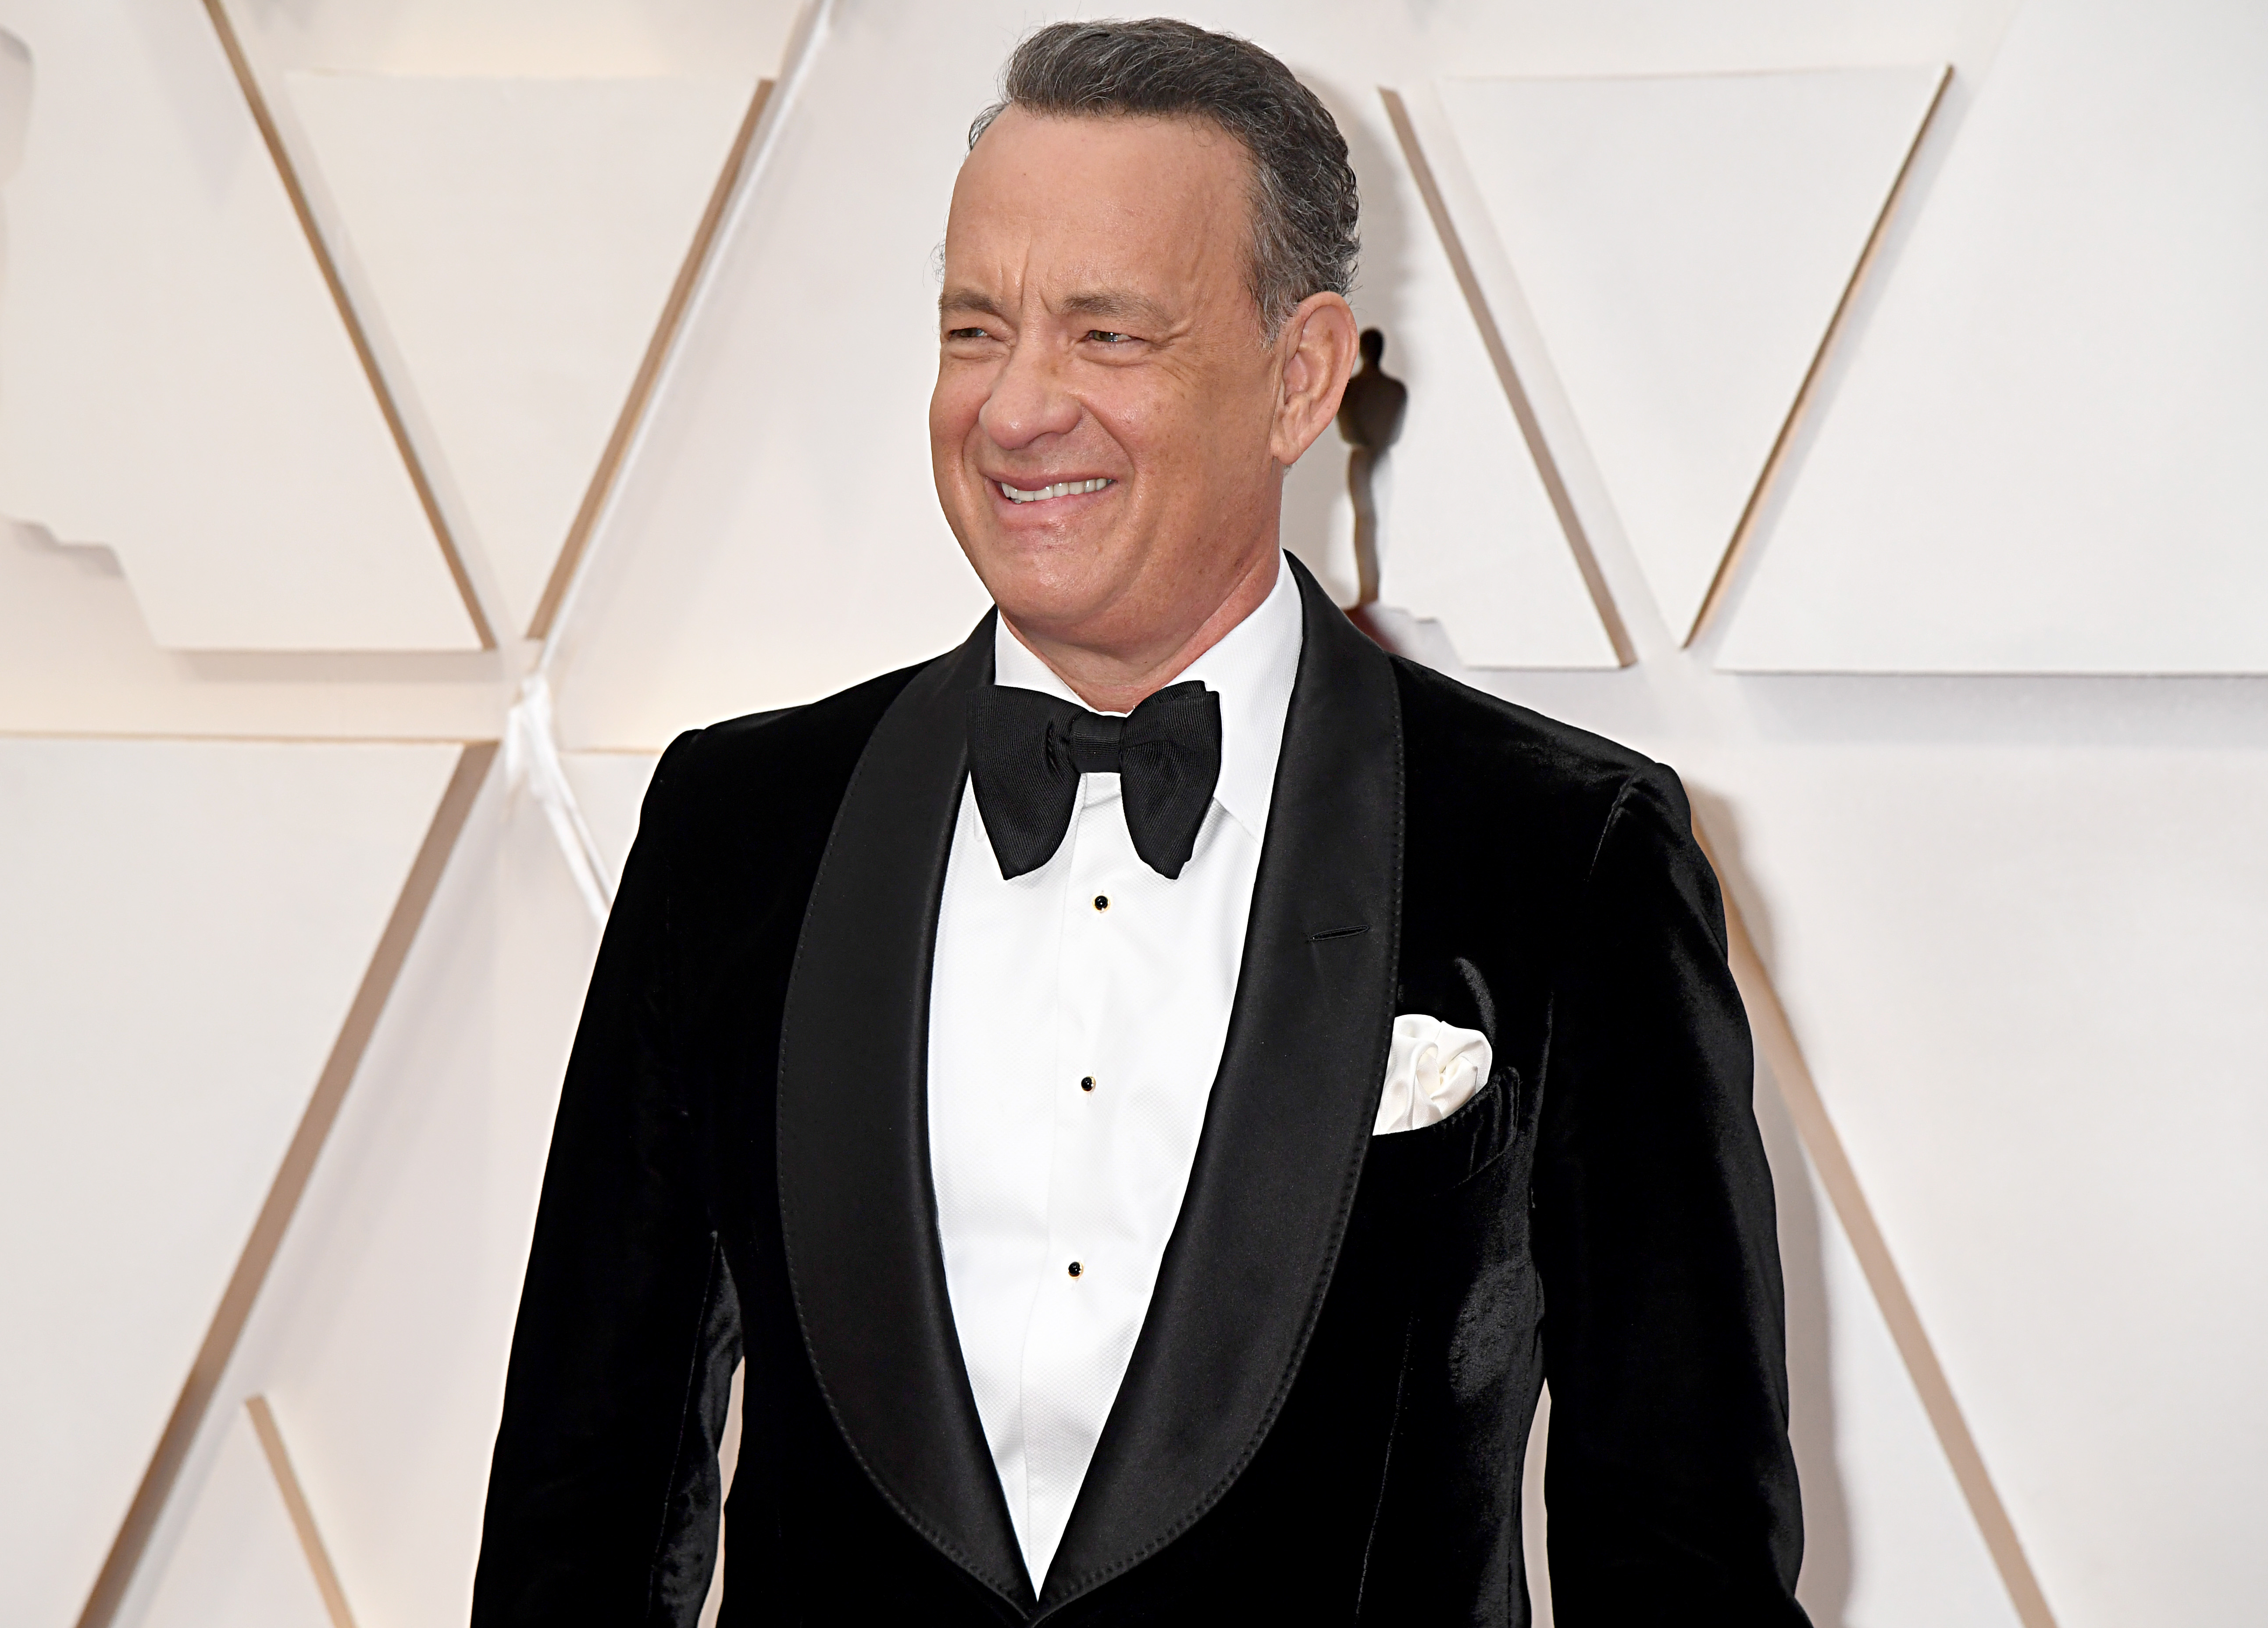 Tom Hanks attends the 92nd Annual Academy Awards on February 09, 2020 in Hollywood, California.